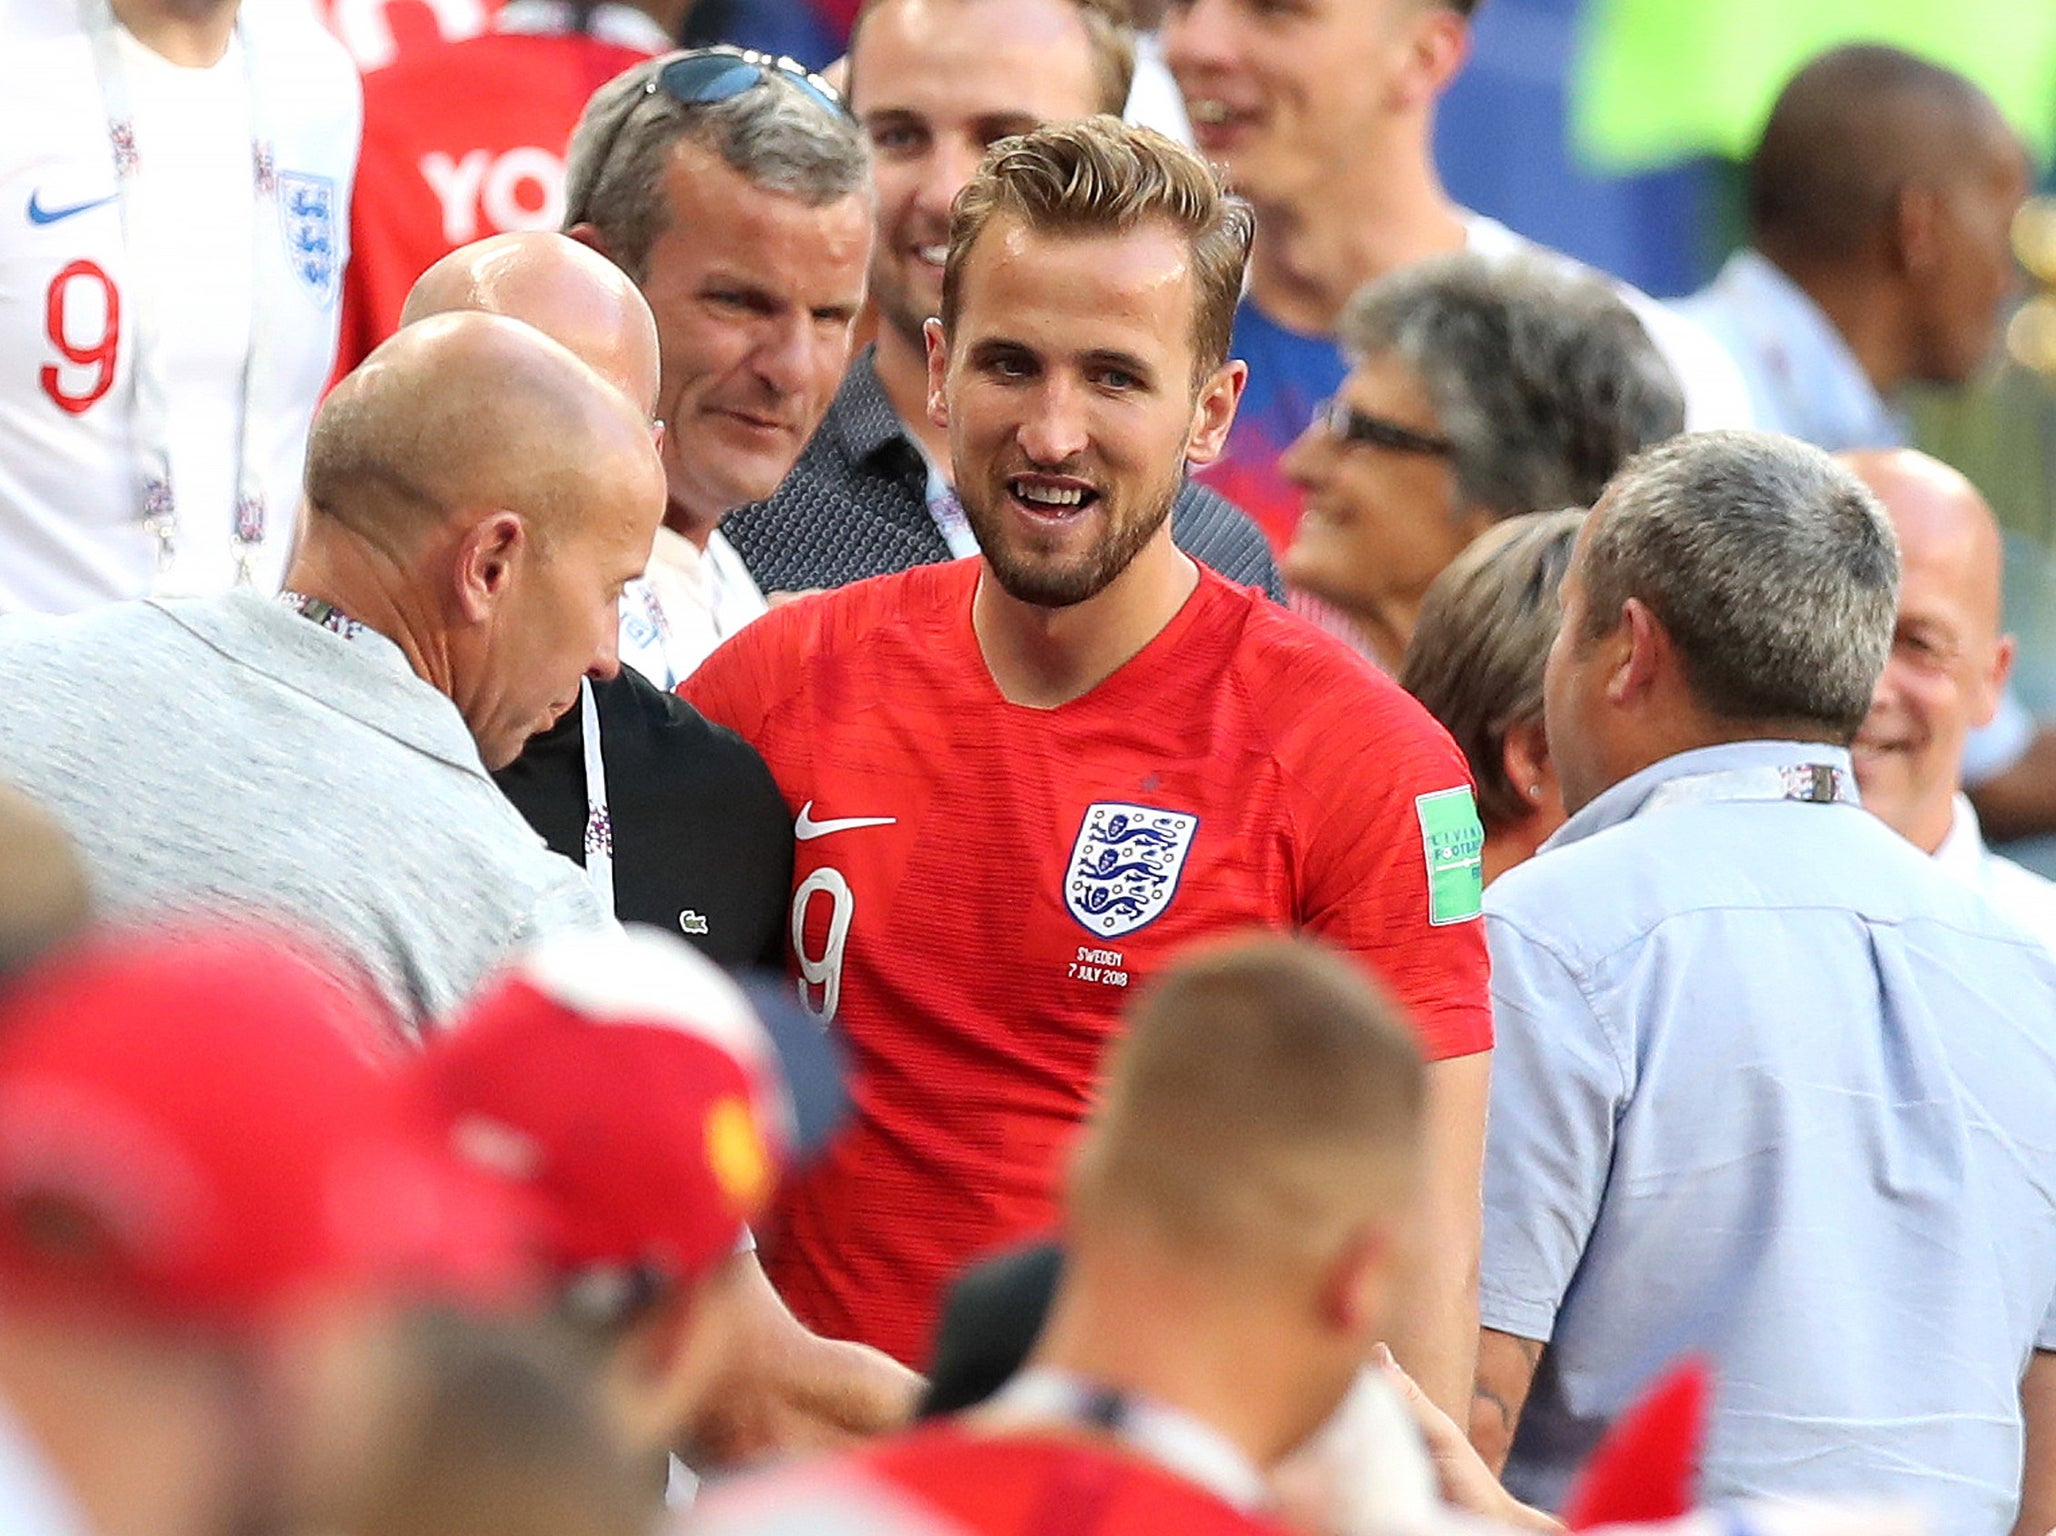 England vs Sweden: Harry Kane reveals crucial factor in 2-0 win that took team through to World Cup 2018 semi-finals